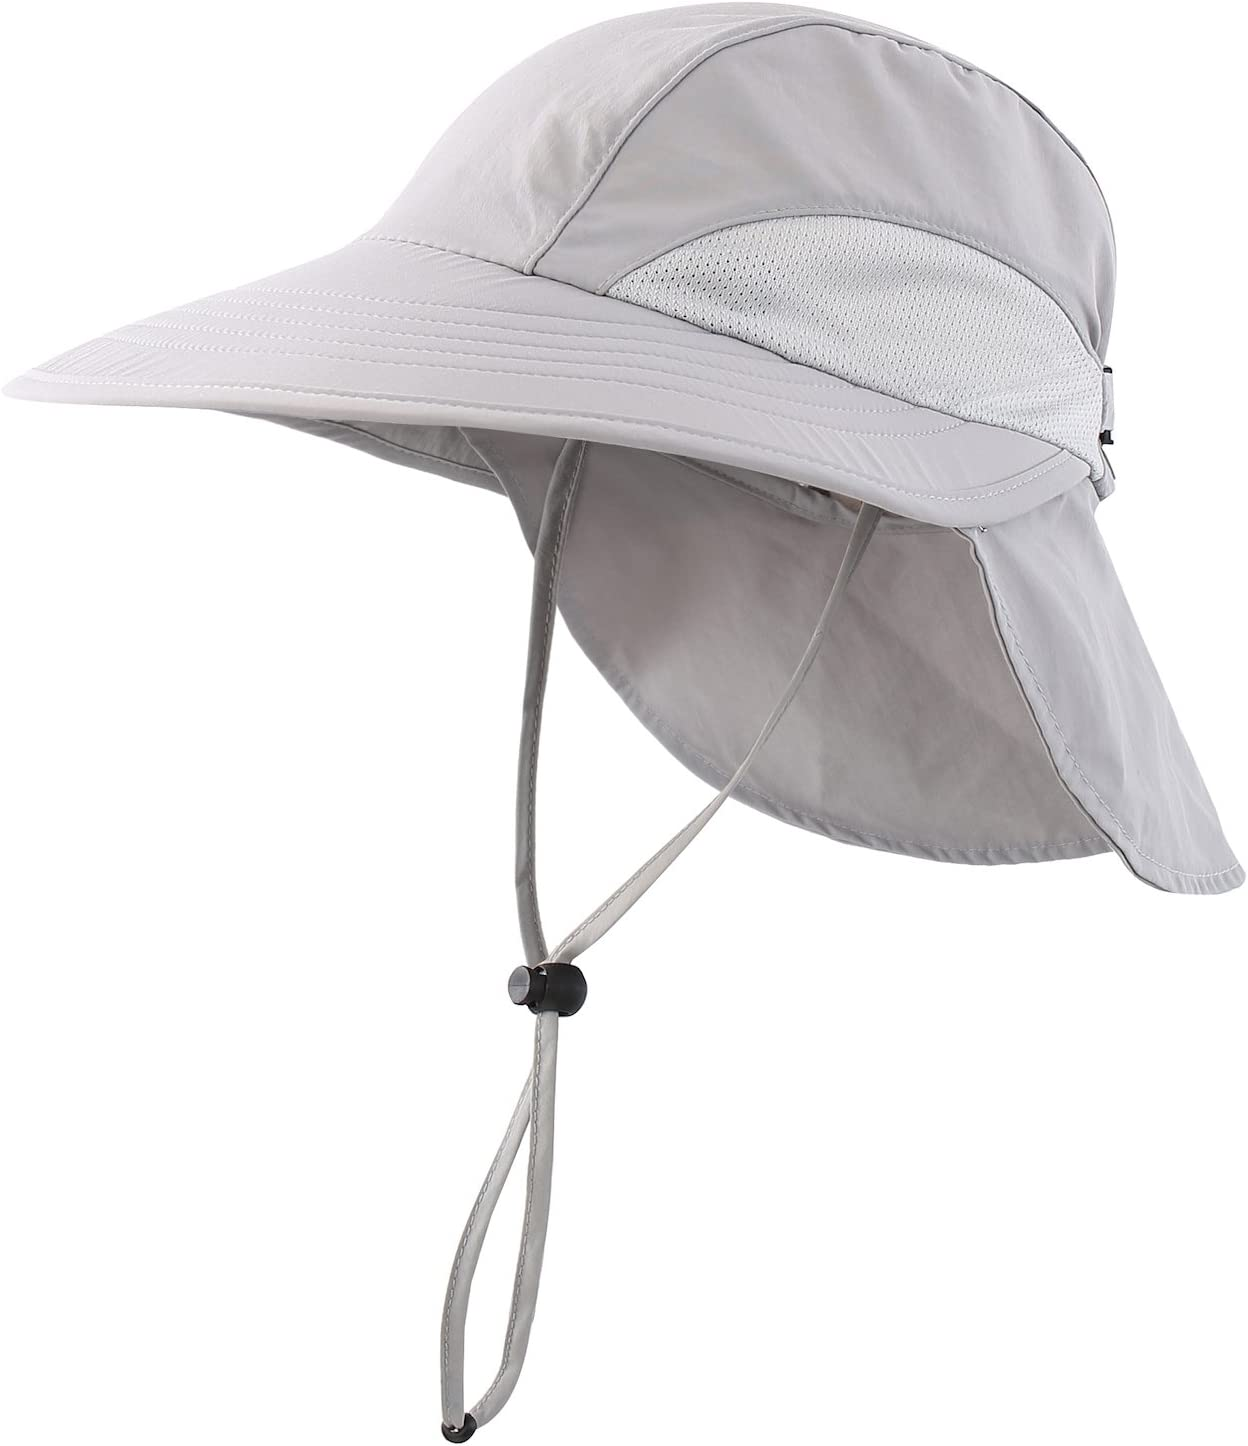 Home Prefer Men s Sun Hat Wide Brim Light Weight Fishing Hat with Neck Flap